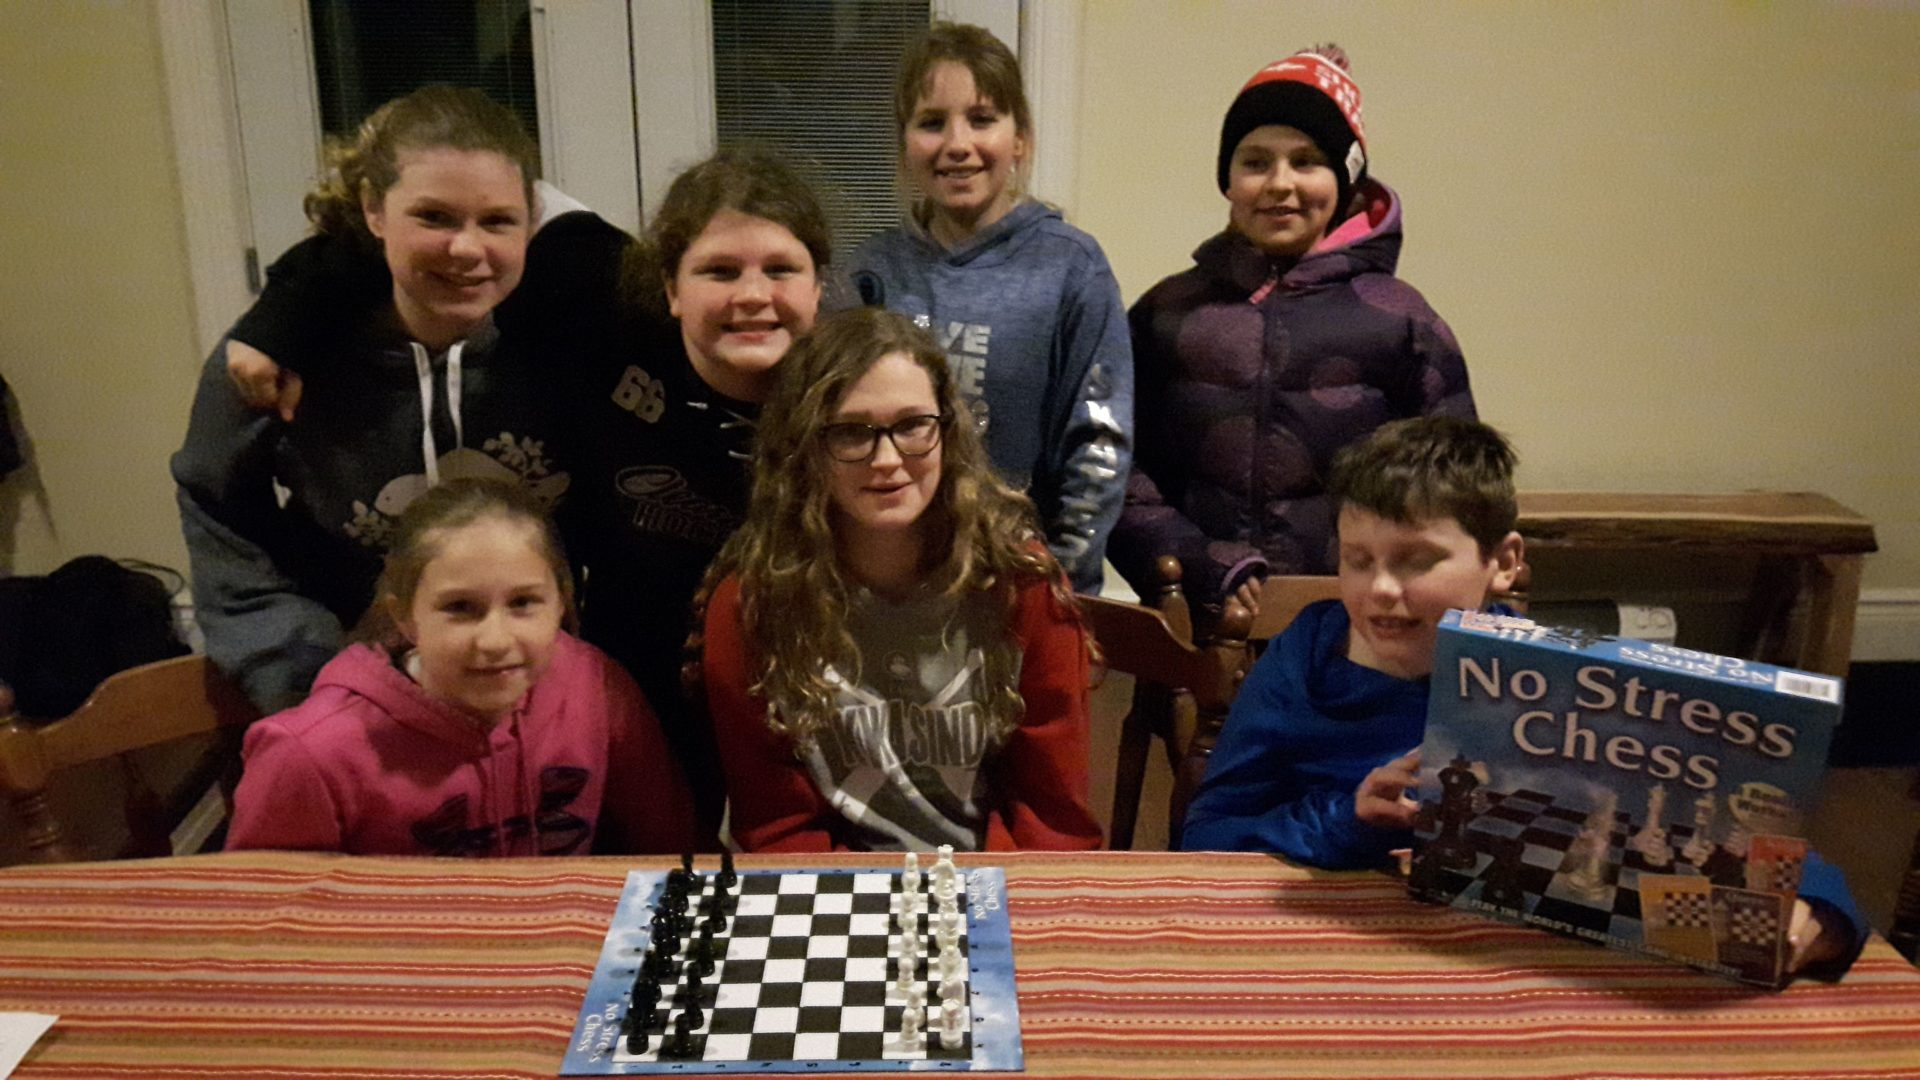 Members at the organization meeting with chess board